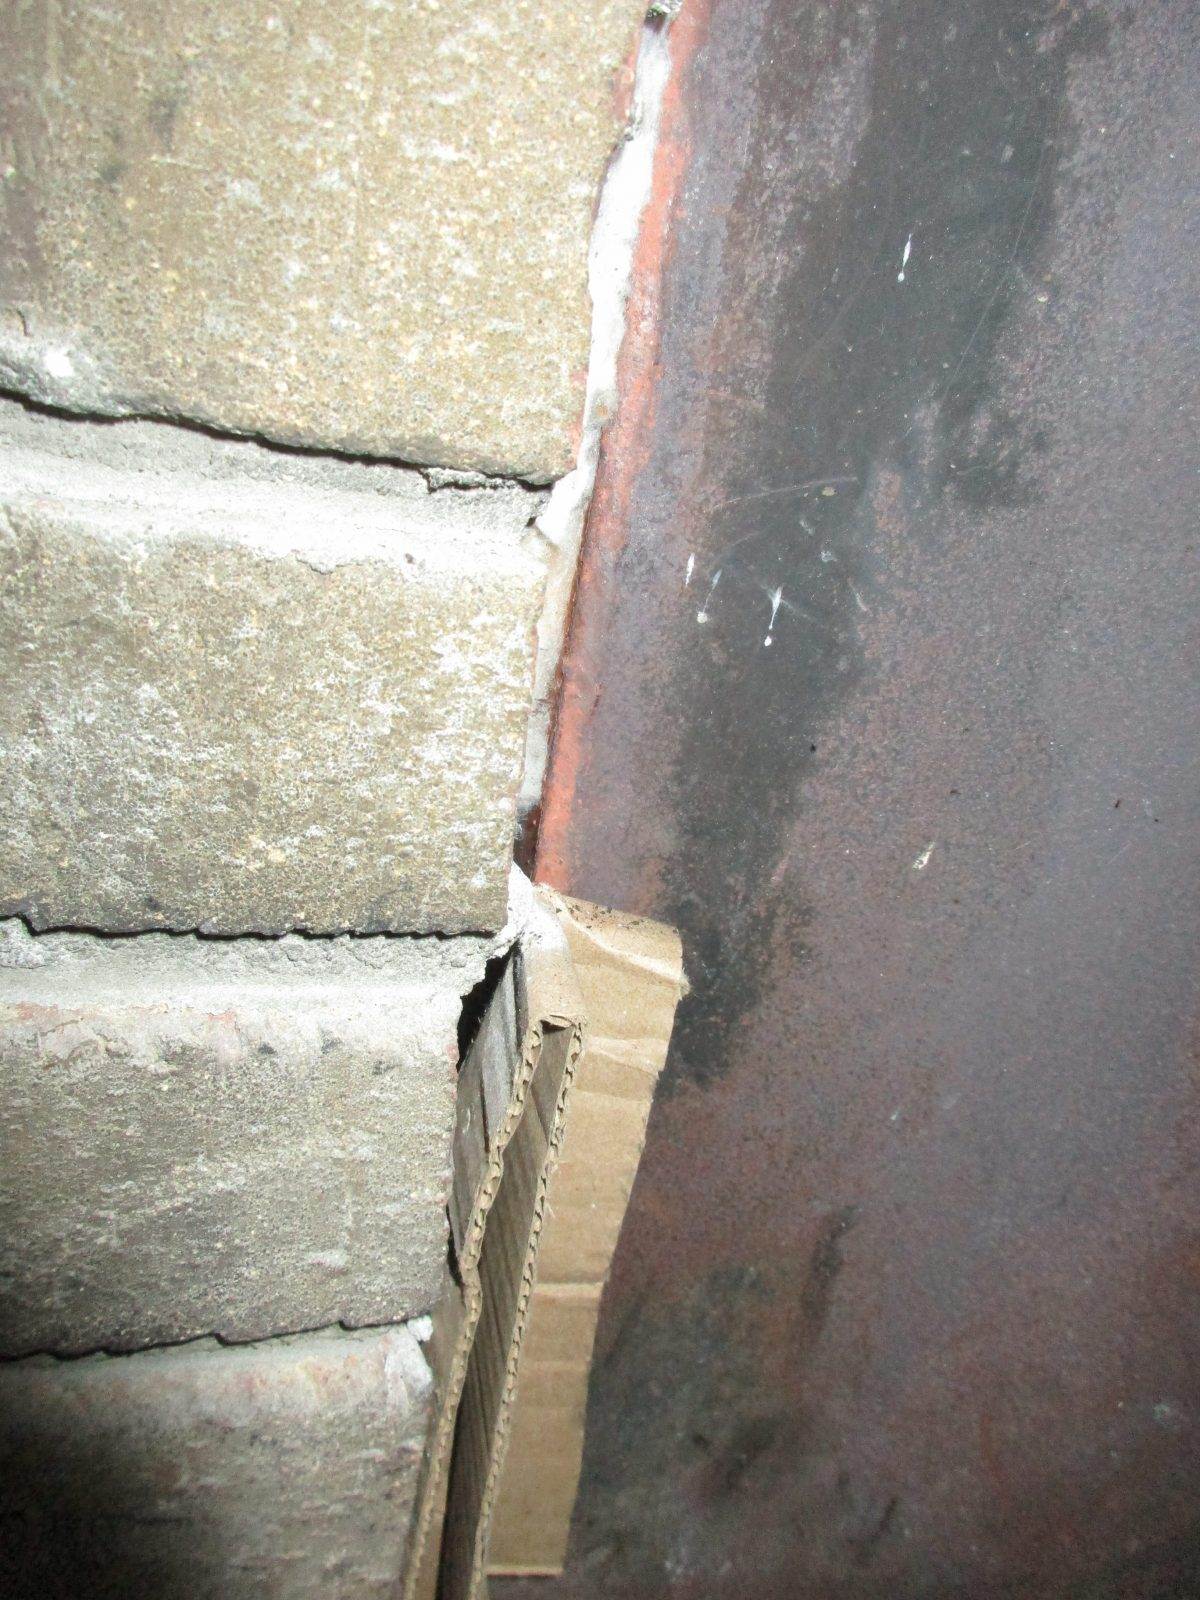 Gaps at firebox sealed with pieces of cardboard